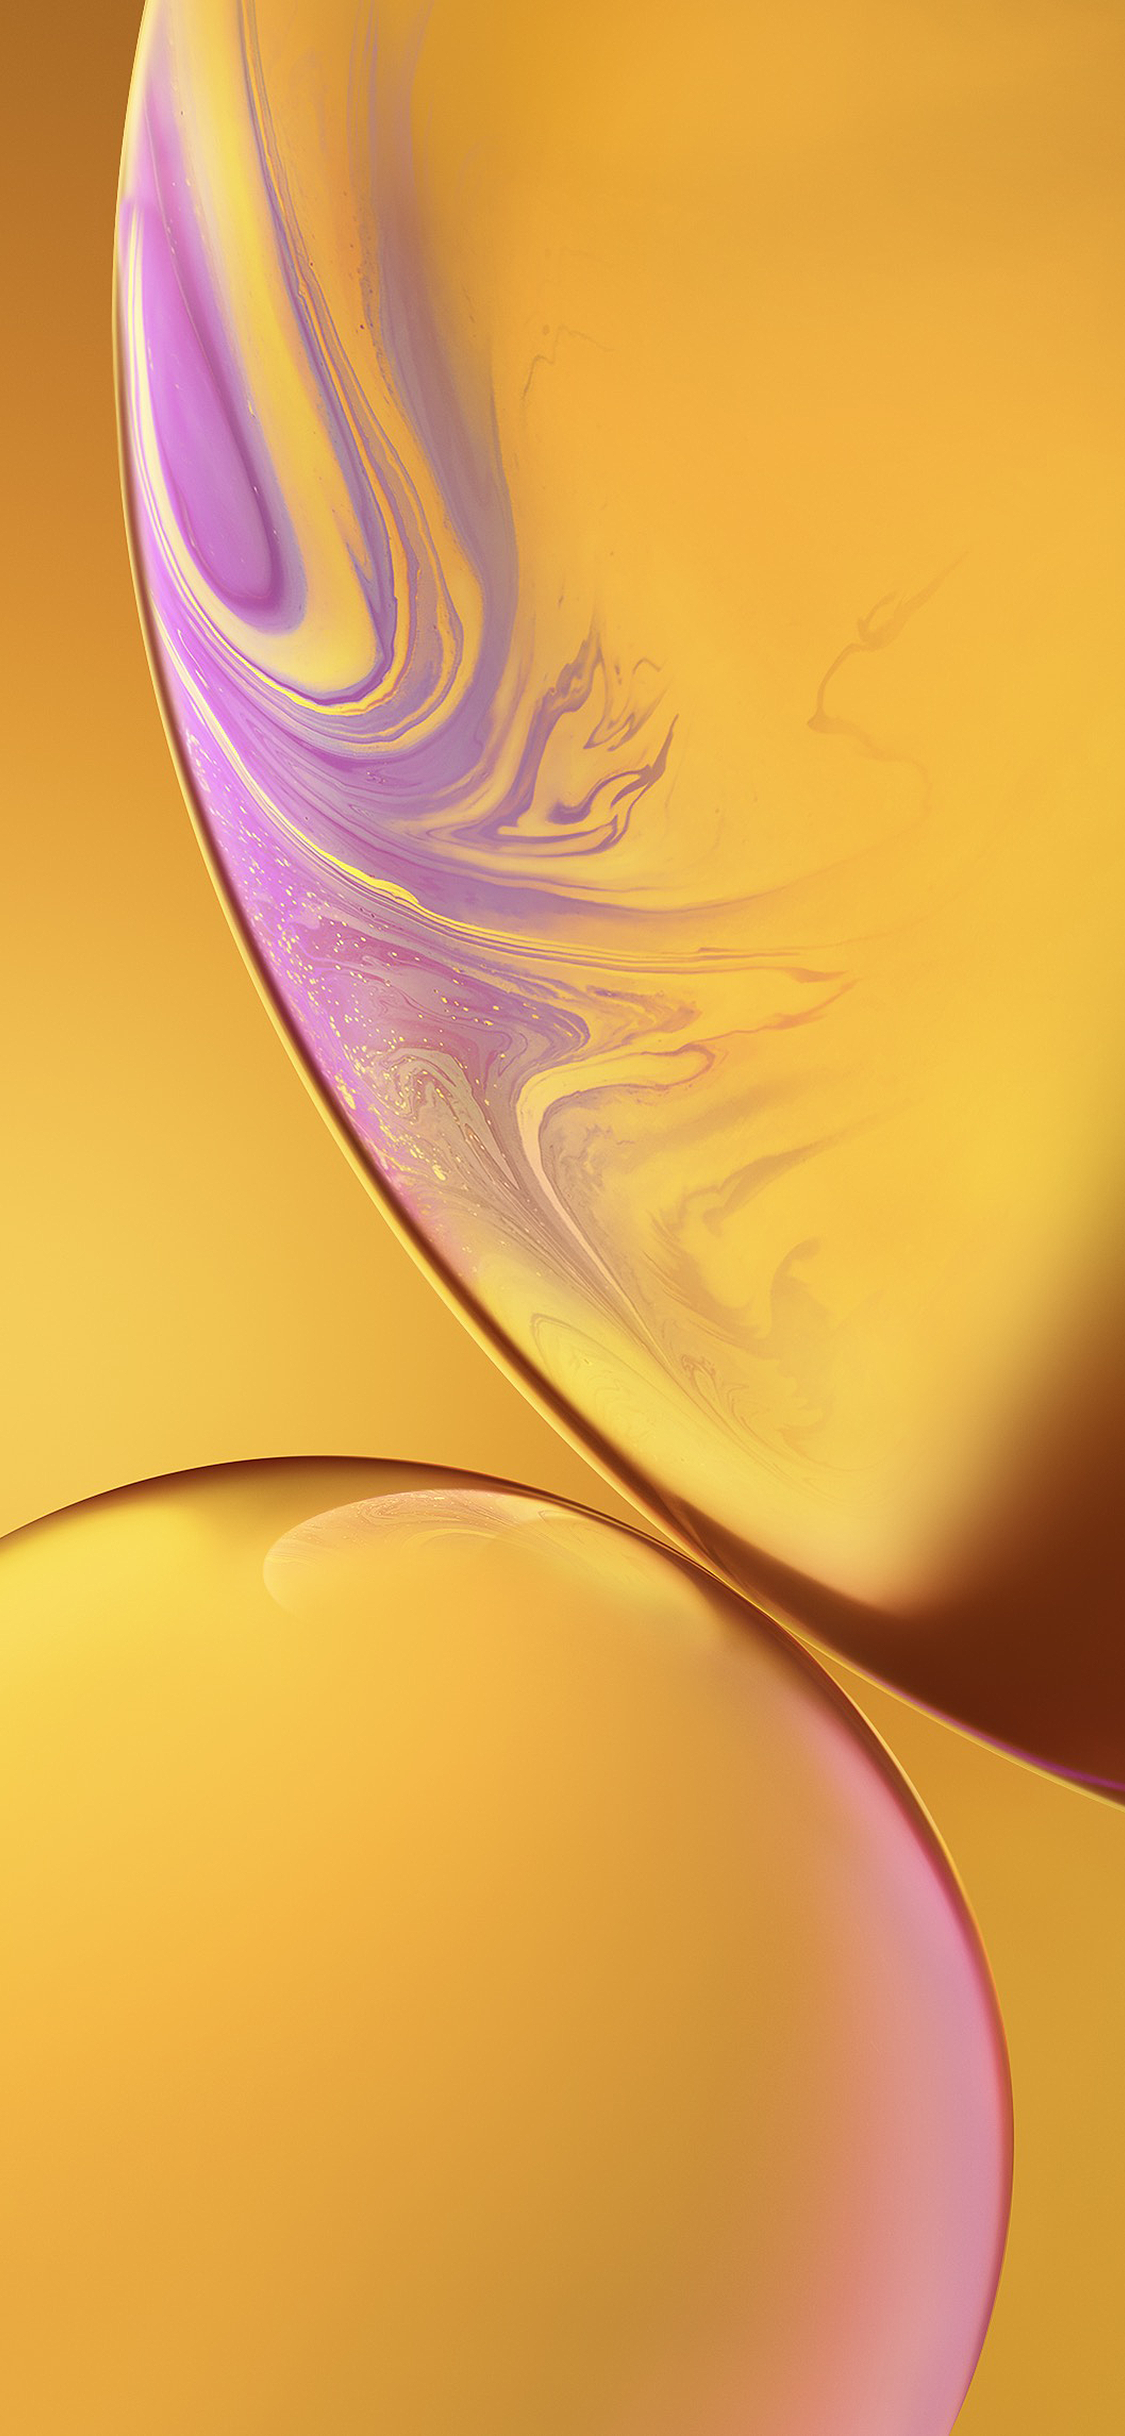 iPhone wallpaper ios 12 wallpapers yellow iOS 12 Wallpapers